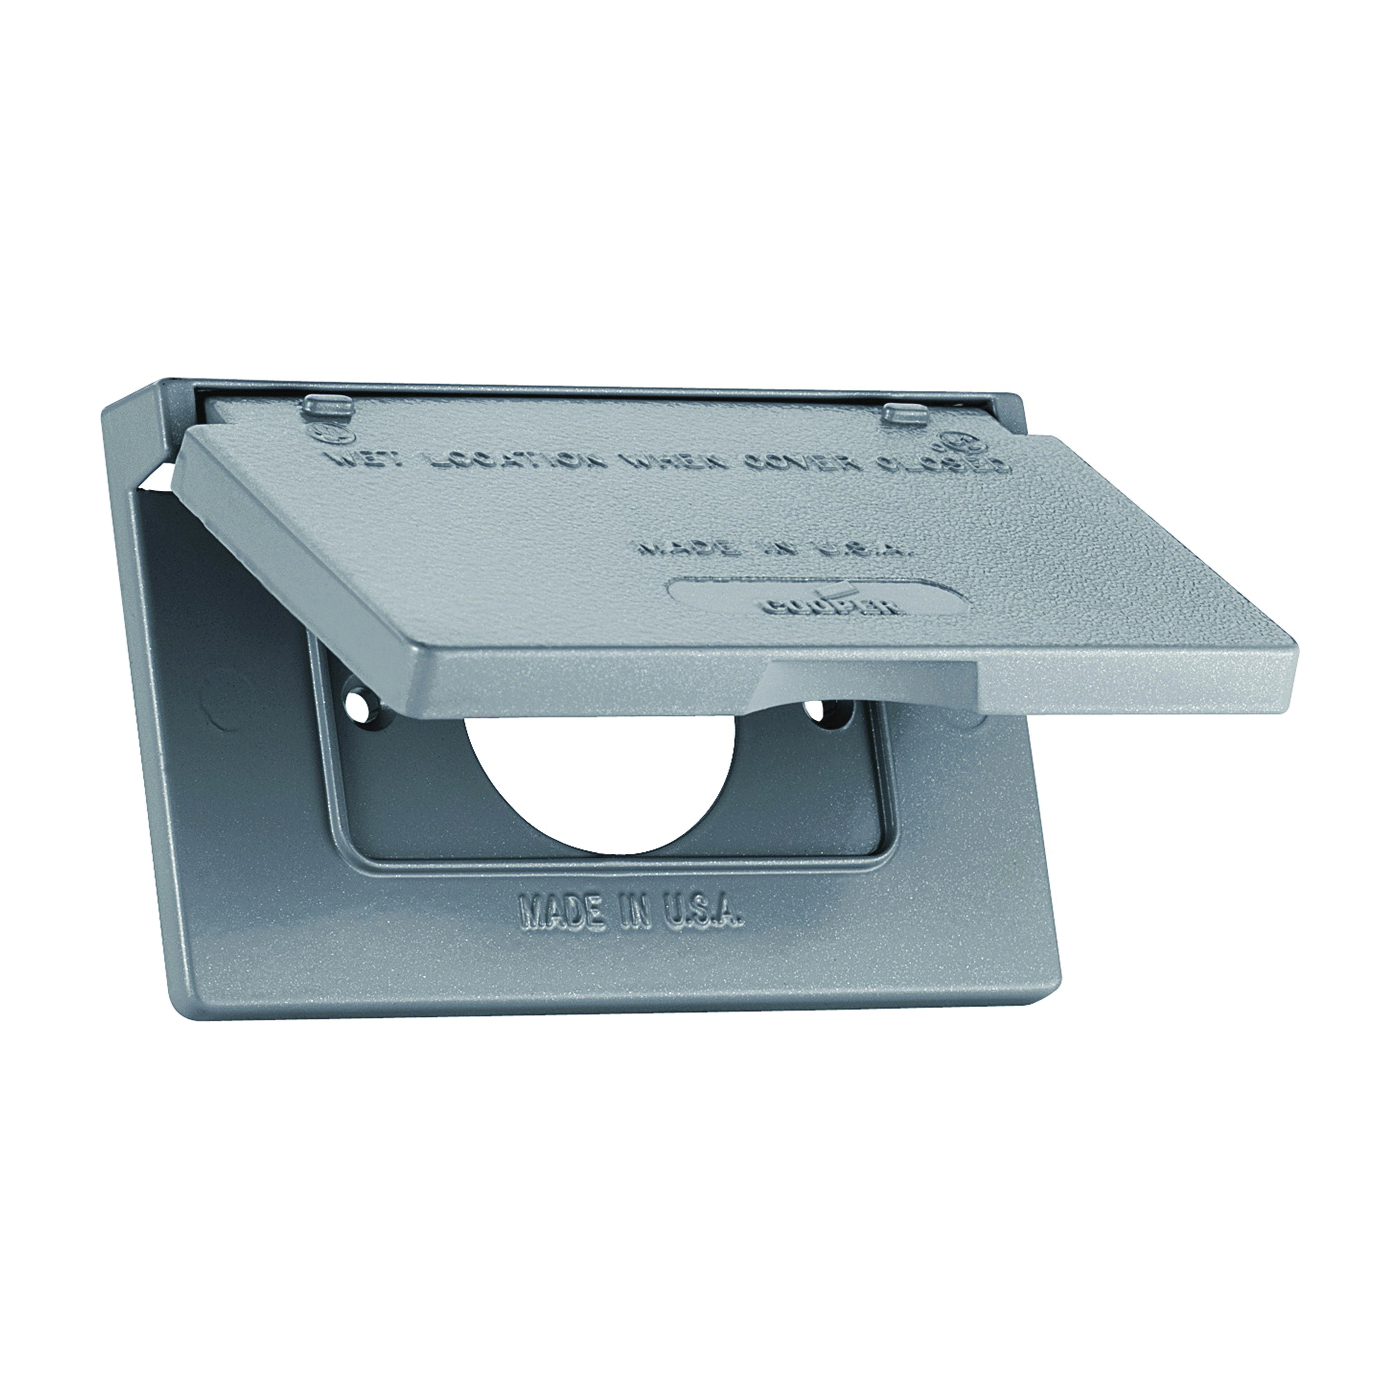 Picture of Eaton Wiring Devices S992 Cover, 4-9/16 in L, 2-13/16 in W, Rectangular, Metal, Gray, Powder-Coated